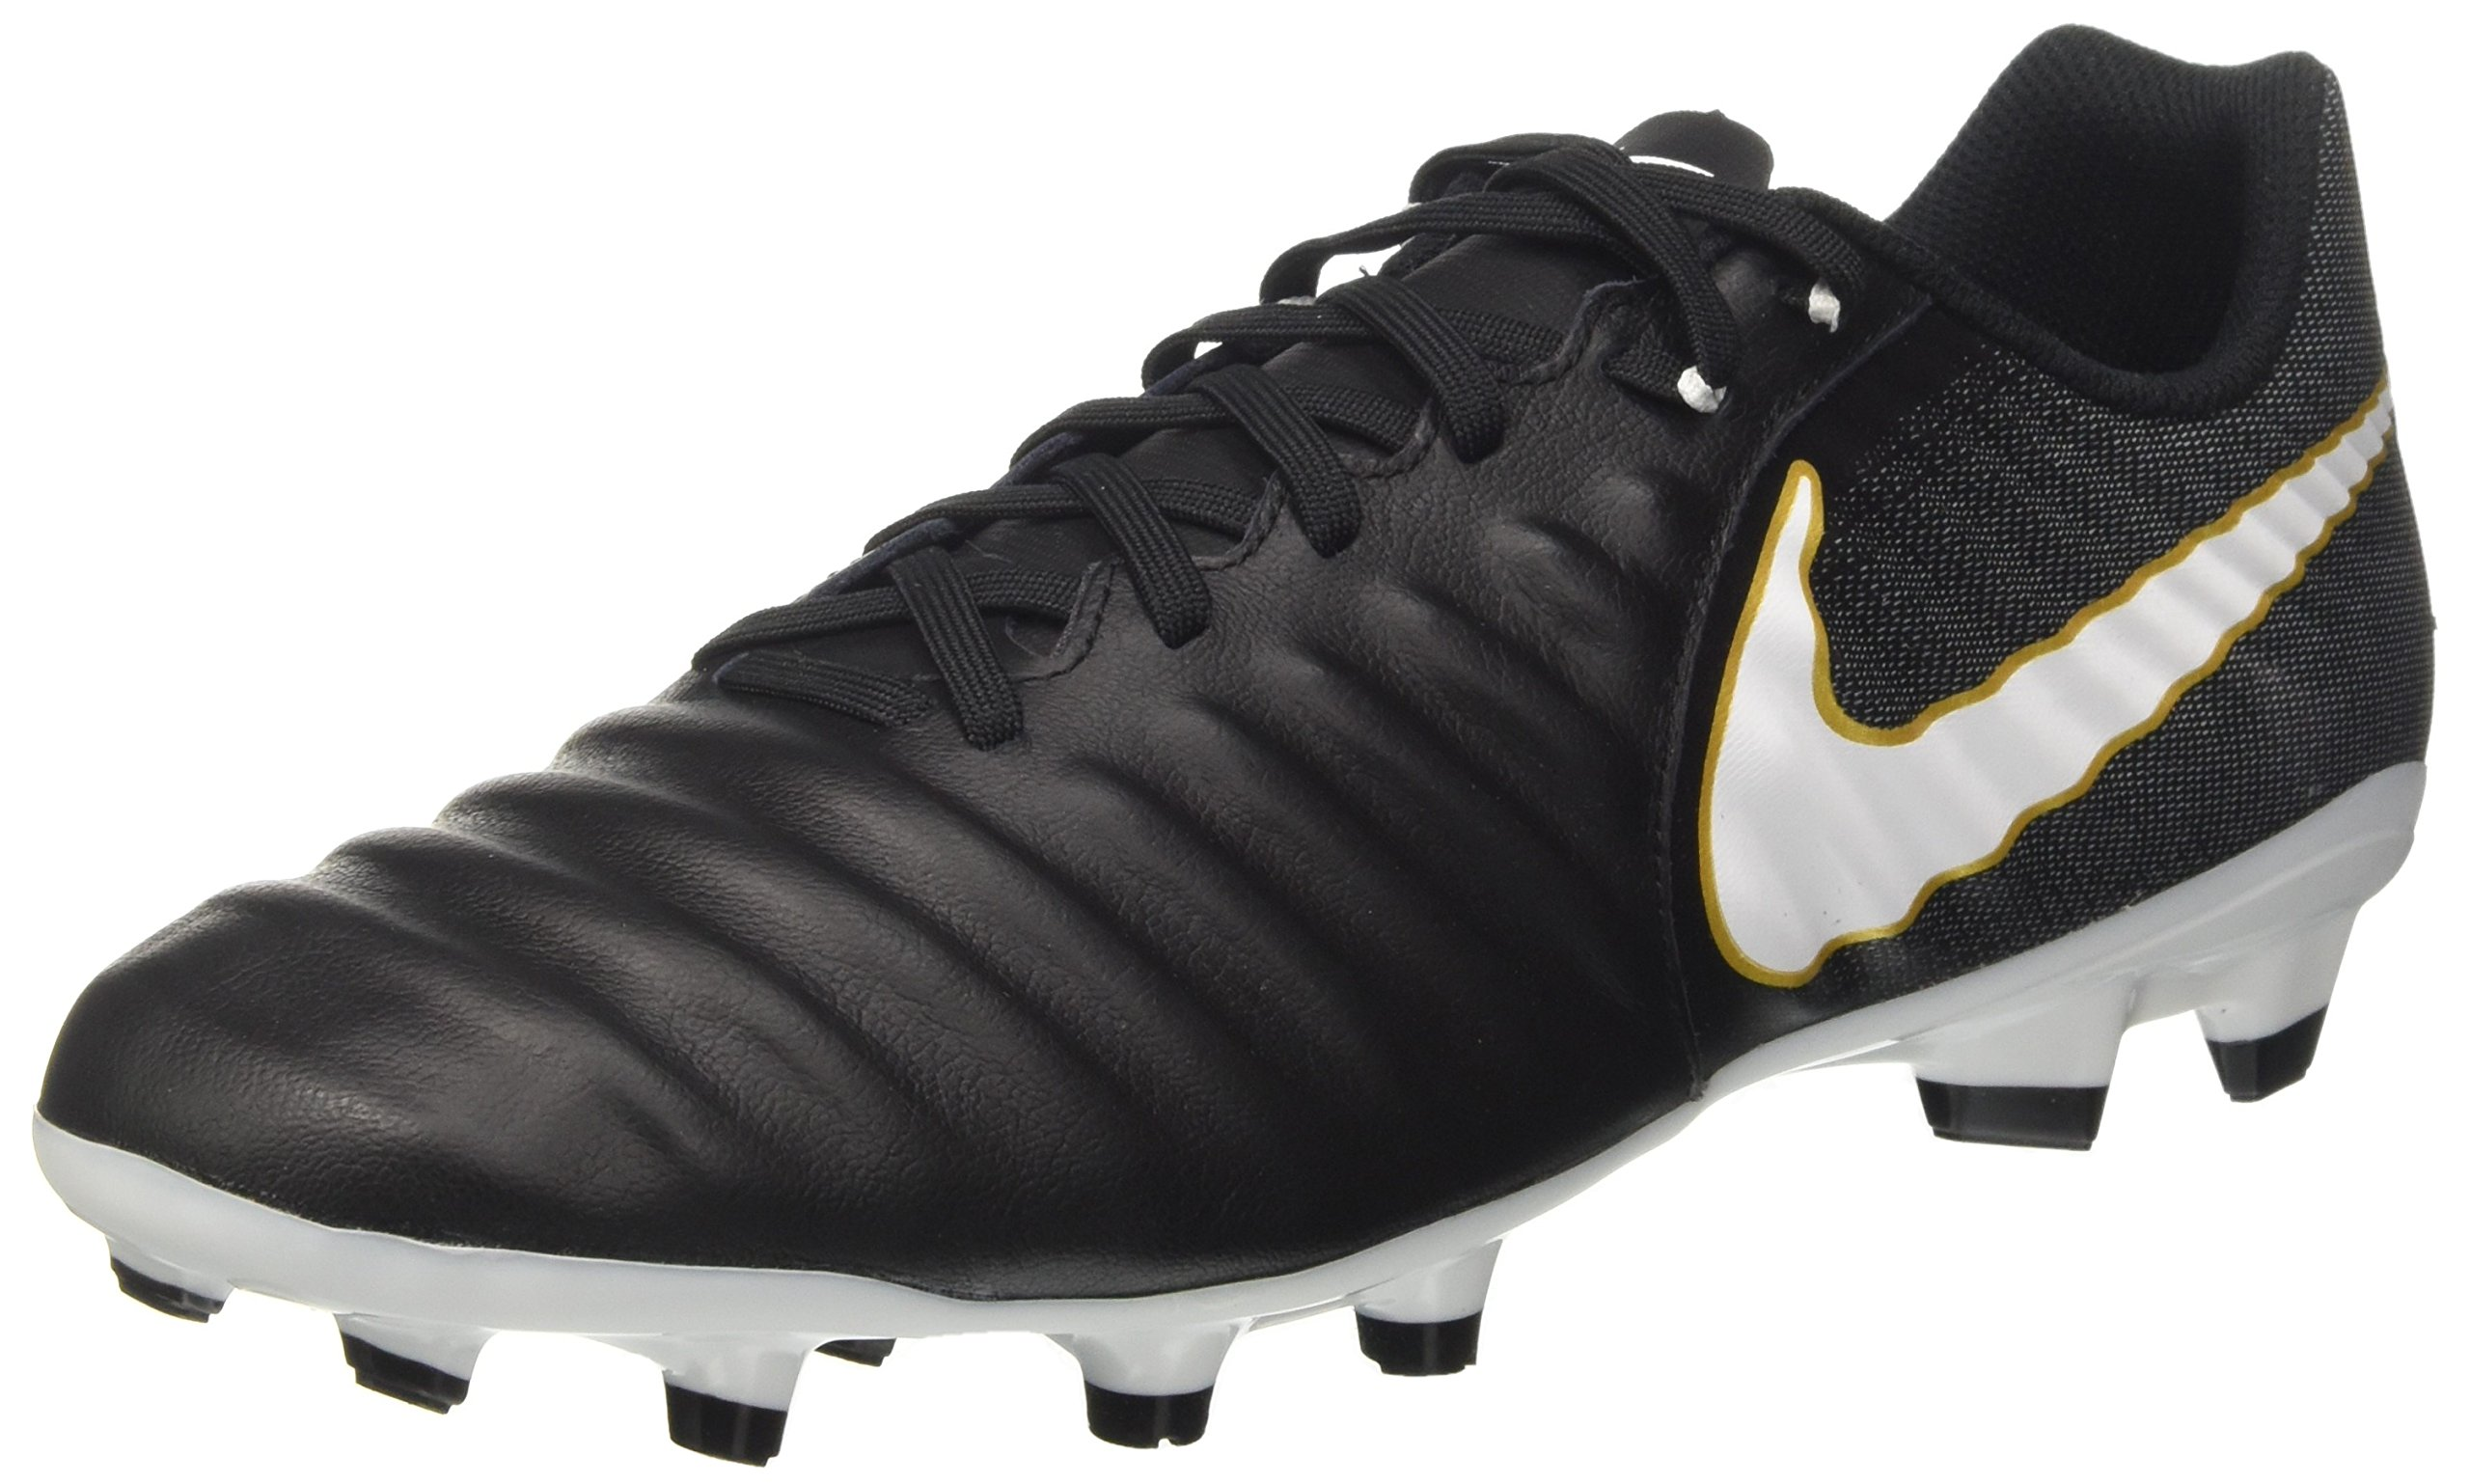 41a46c3de5d1b1 Galleon - Nike Men s Tiempo Ligera IV Leather Firm-Ground Soccer Cleats  (8.5 D(M) US) Black White